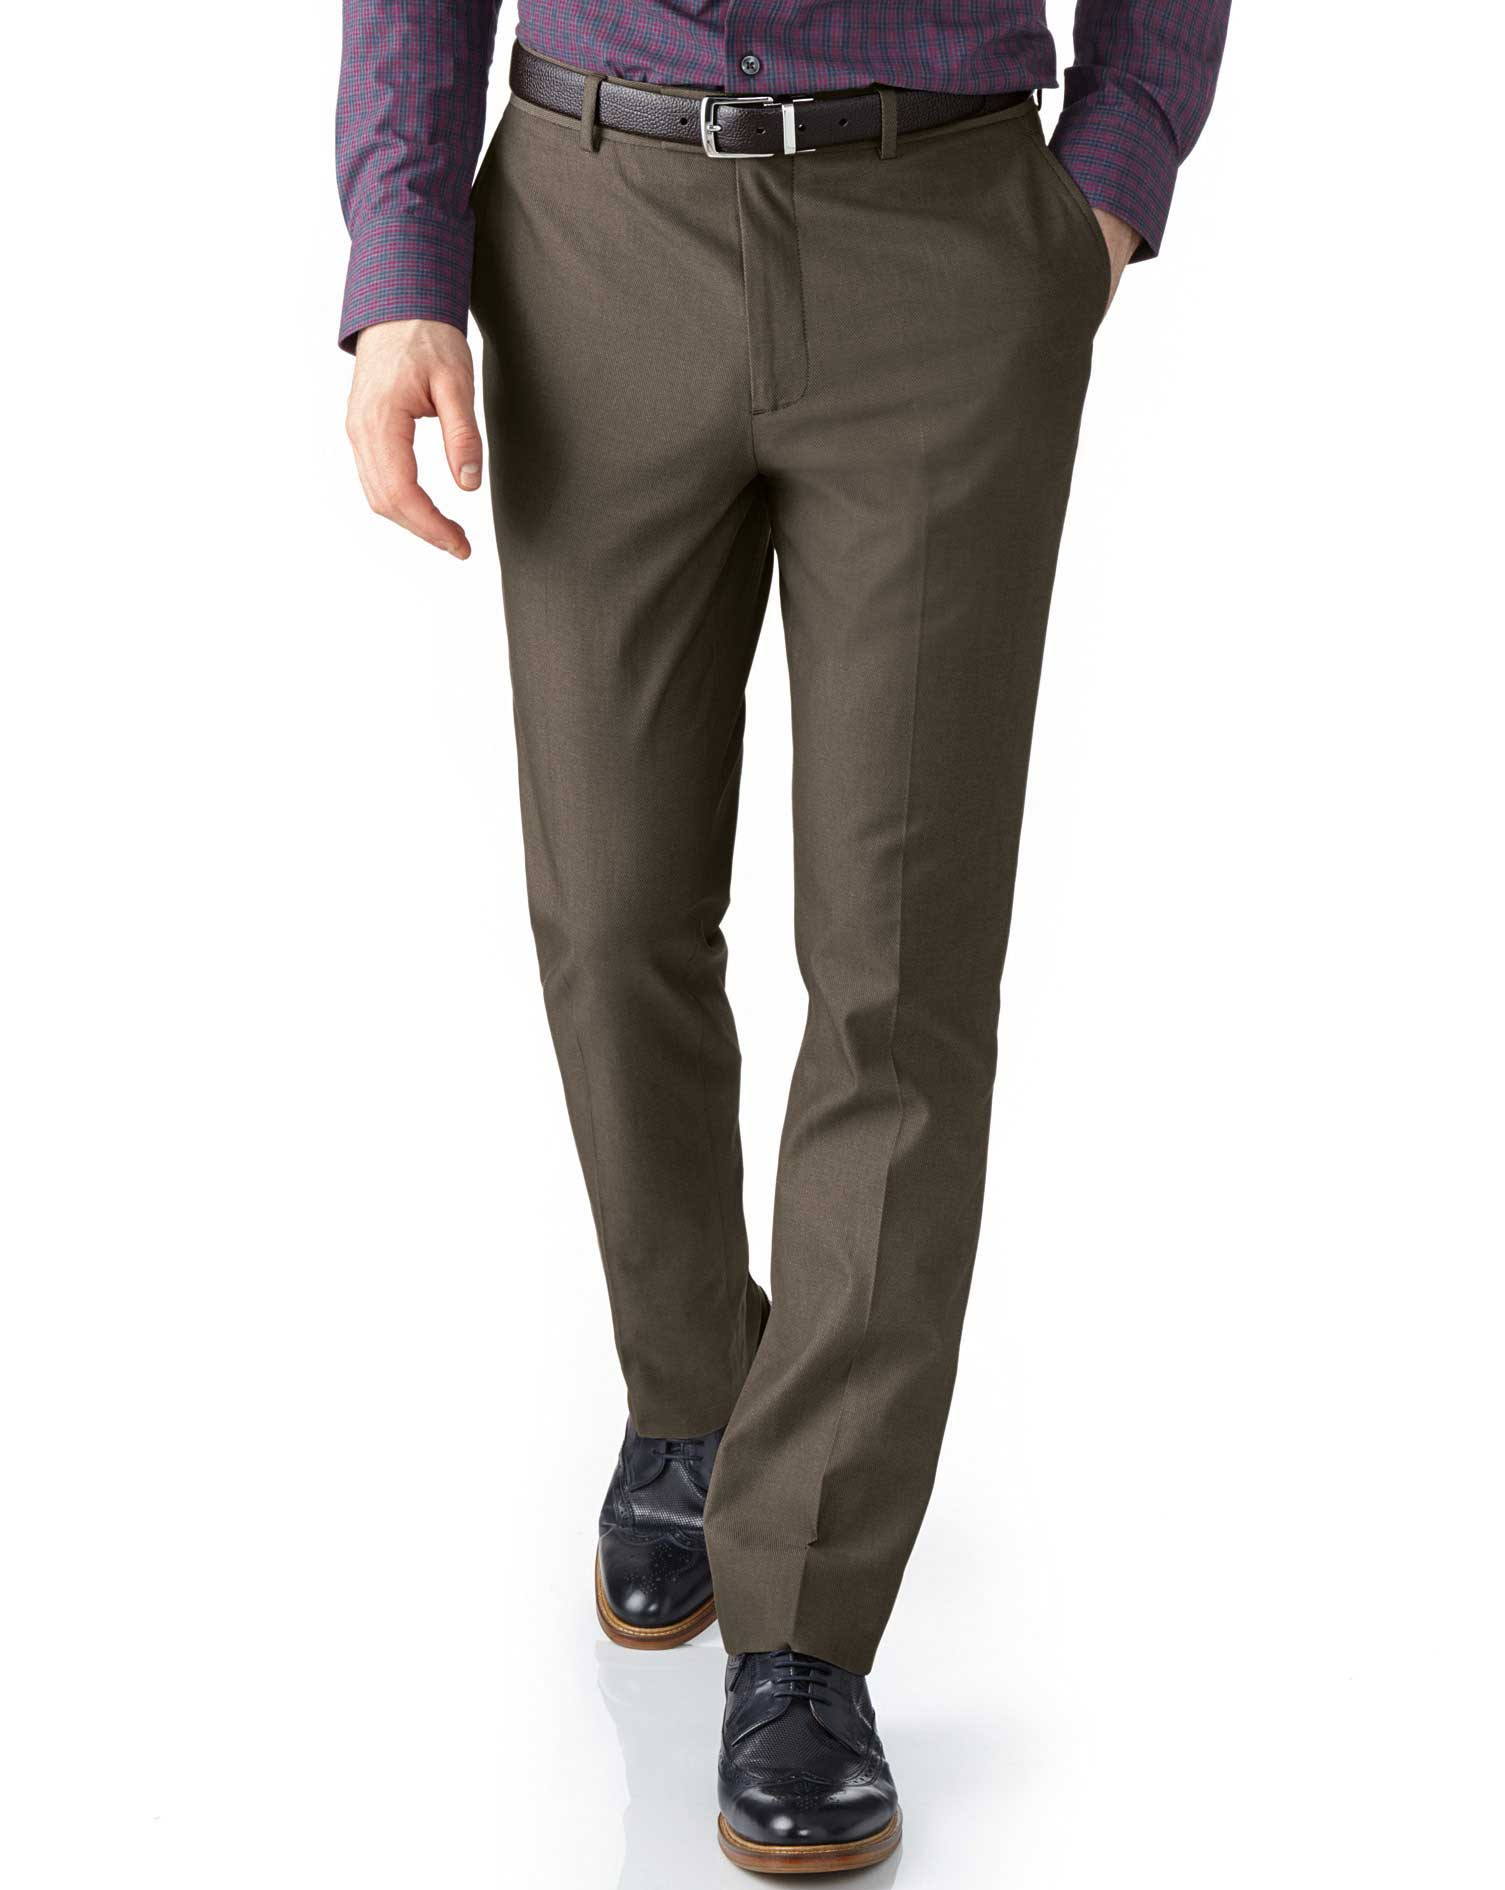 Brown Extra Slim Fit Stretch Cavalry Twill Cotton Chino Trousers Size W34 L32 by Charles Tyrwhitt